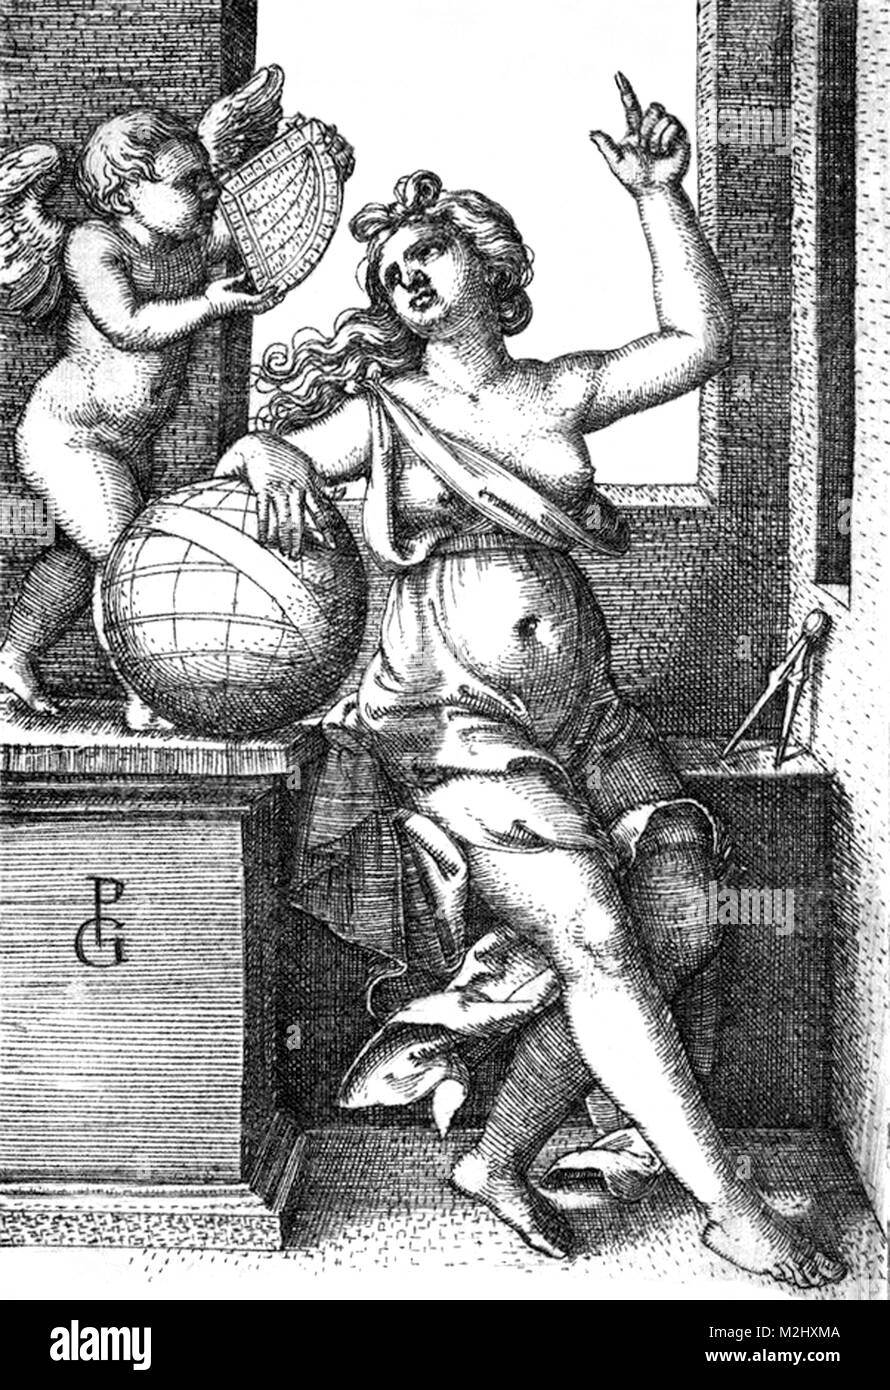 Liberal Arts, Personification of Astrology - Stock Image